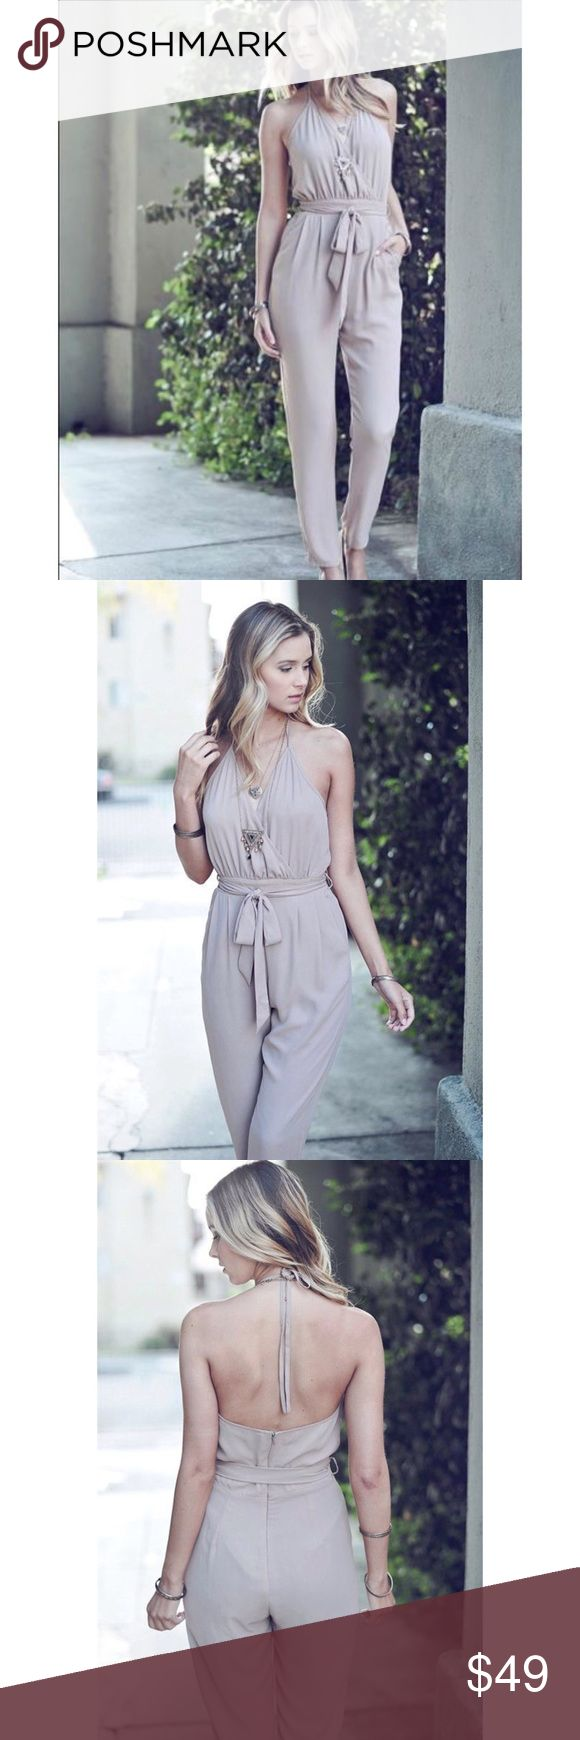 "🌸🍃One Piece Halter Tie Jumpsuit 💗 Color may slightly vary according to device  💗 Mannequin photo is the best color representation  💗 Adjustable w/halter tie & waist tie 💗 100% Polyester (not stretchy) 💗 Hand wash cold, line dry  S: Bust: 32"" Waist: 26"" Inseam: 29"" Leg Opening: 11"" M: Bust: 36"" Waist: 28"" Inseam: 29"" Leg Opening: 12"" L: Bust: 38"" Waist: 30"" Inseam: 29"" Leg Opening: 13"" Double Zero Pants Jumpsuits & Rompers"